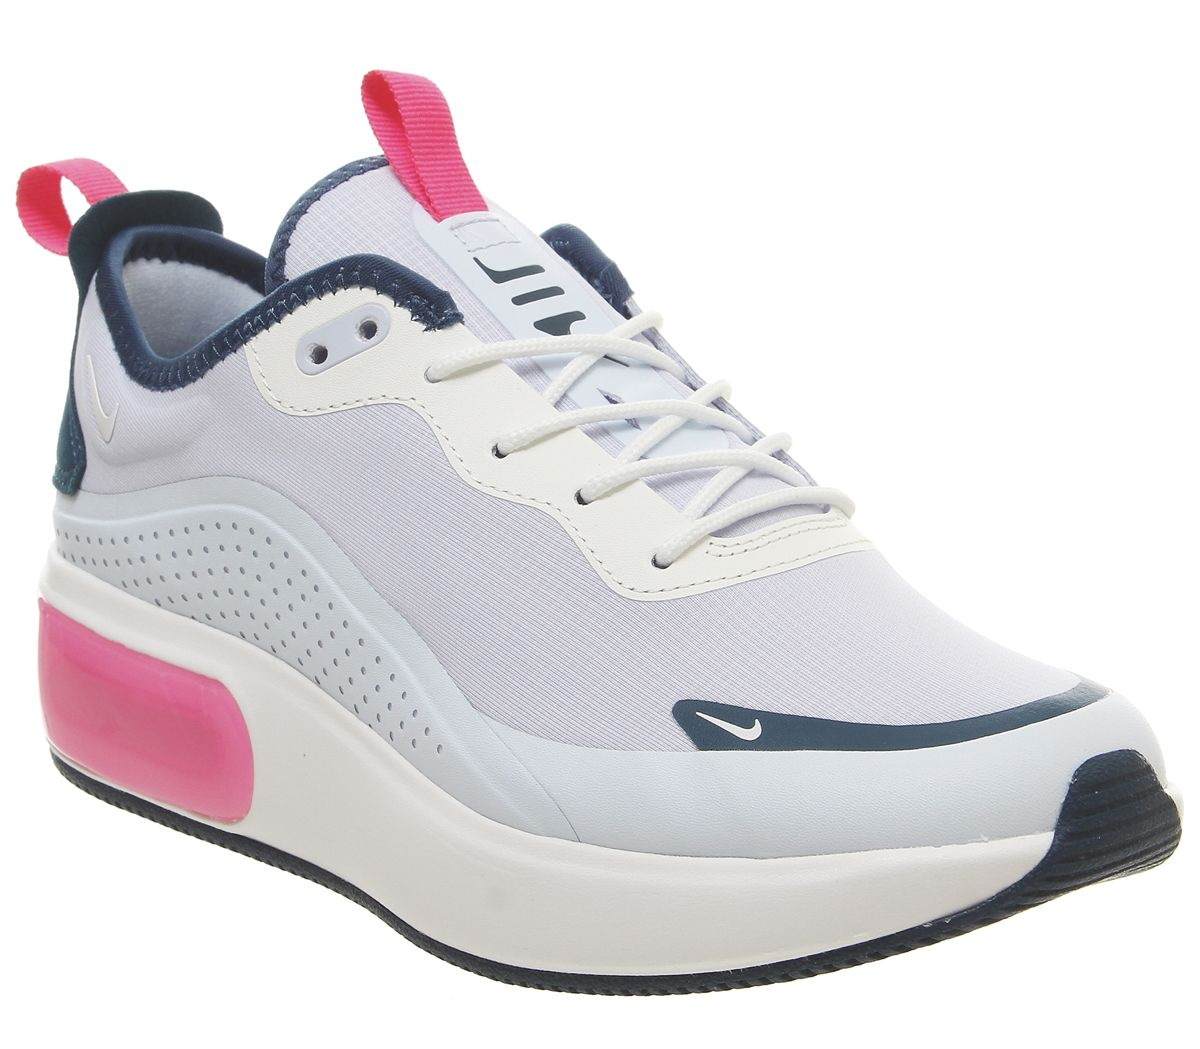 15127722d1 Nike Air Max Dia Trainers Blue Force Hyper Pink Summit White - Hers ...